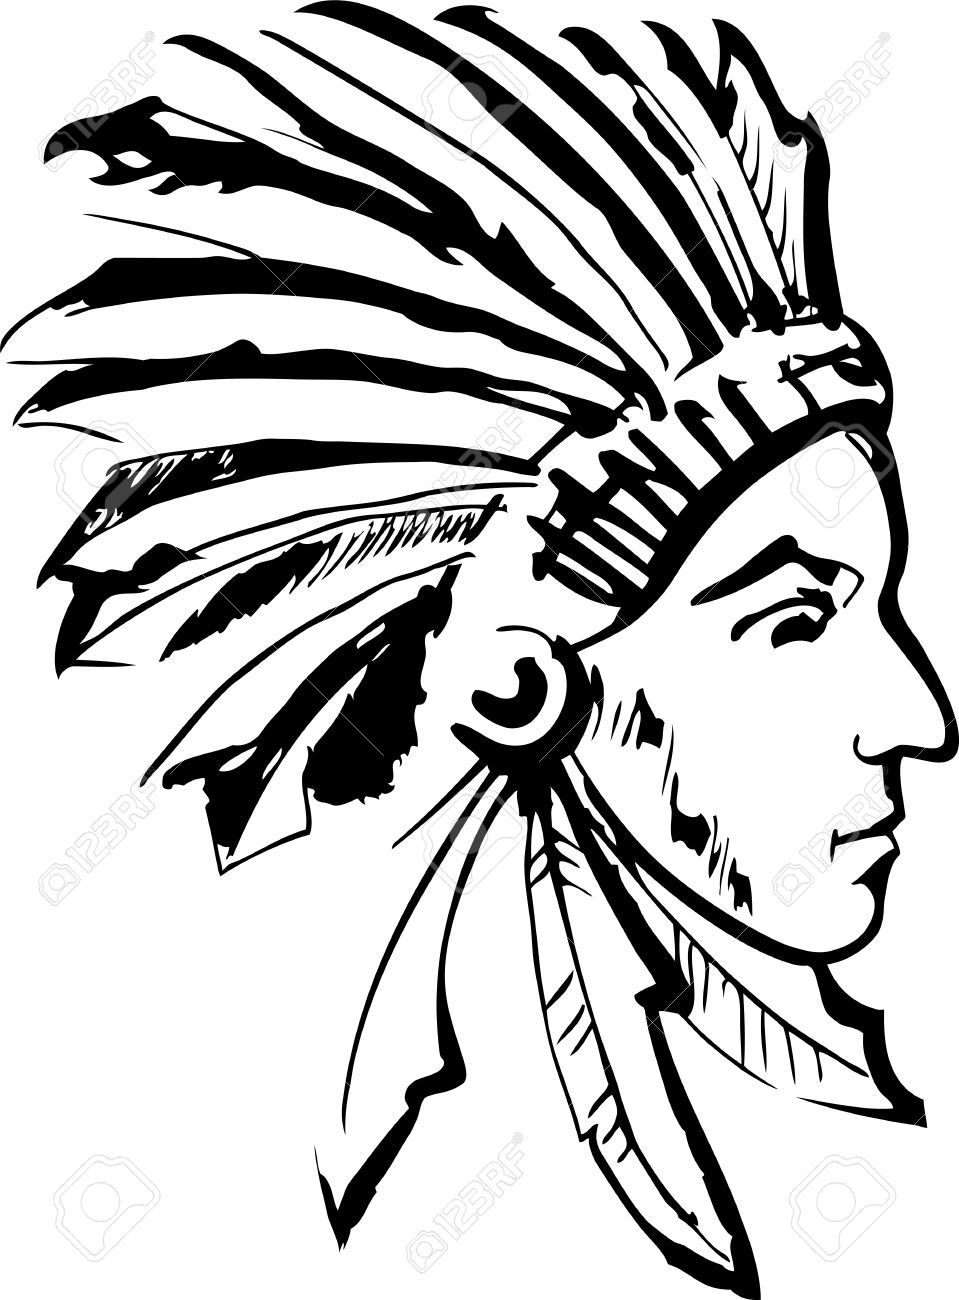 American indian chief clipart 6 » Clipart Station.